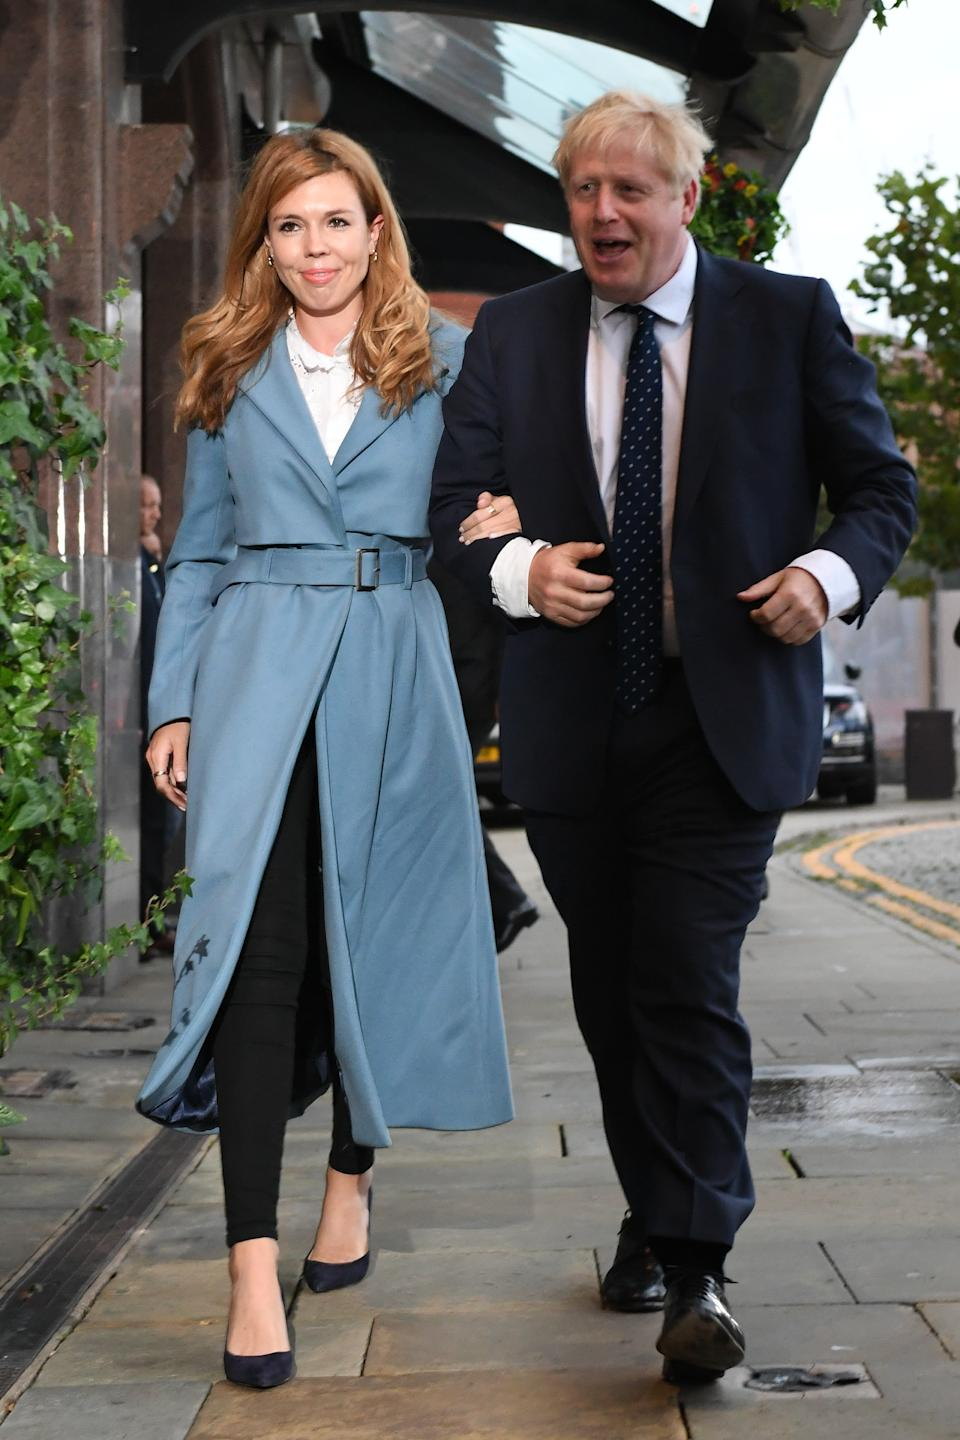 """For the first day of the Conservative Party Conference in Manchester, Carrie Symonds opted for a Tory blue woolen coat by British designer Isabelle Fox, which costs £475. The eco-friendly coat is made from English wool and doesn't contain any microplastics or polyester. She styled the trench coat with a pair of black trousers, a white blouse and black court shoes. <a href=""""https://fave.co/3339MGE"""" rel=""""nofollow noopener"""" target=""""_blank"""" data-ylk=""""slk:Shop now"""" class=""""link rapid-noclick-resp"""">Shop now</a>. <em>[Photo: Getty Images]</em>"""